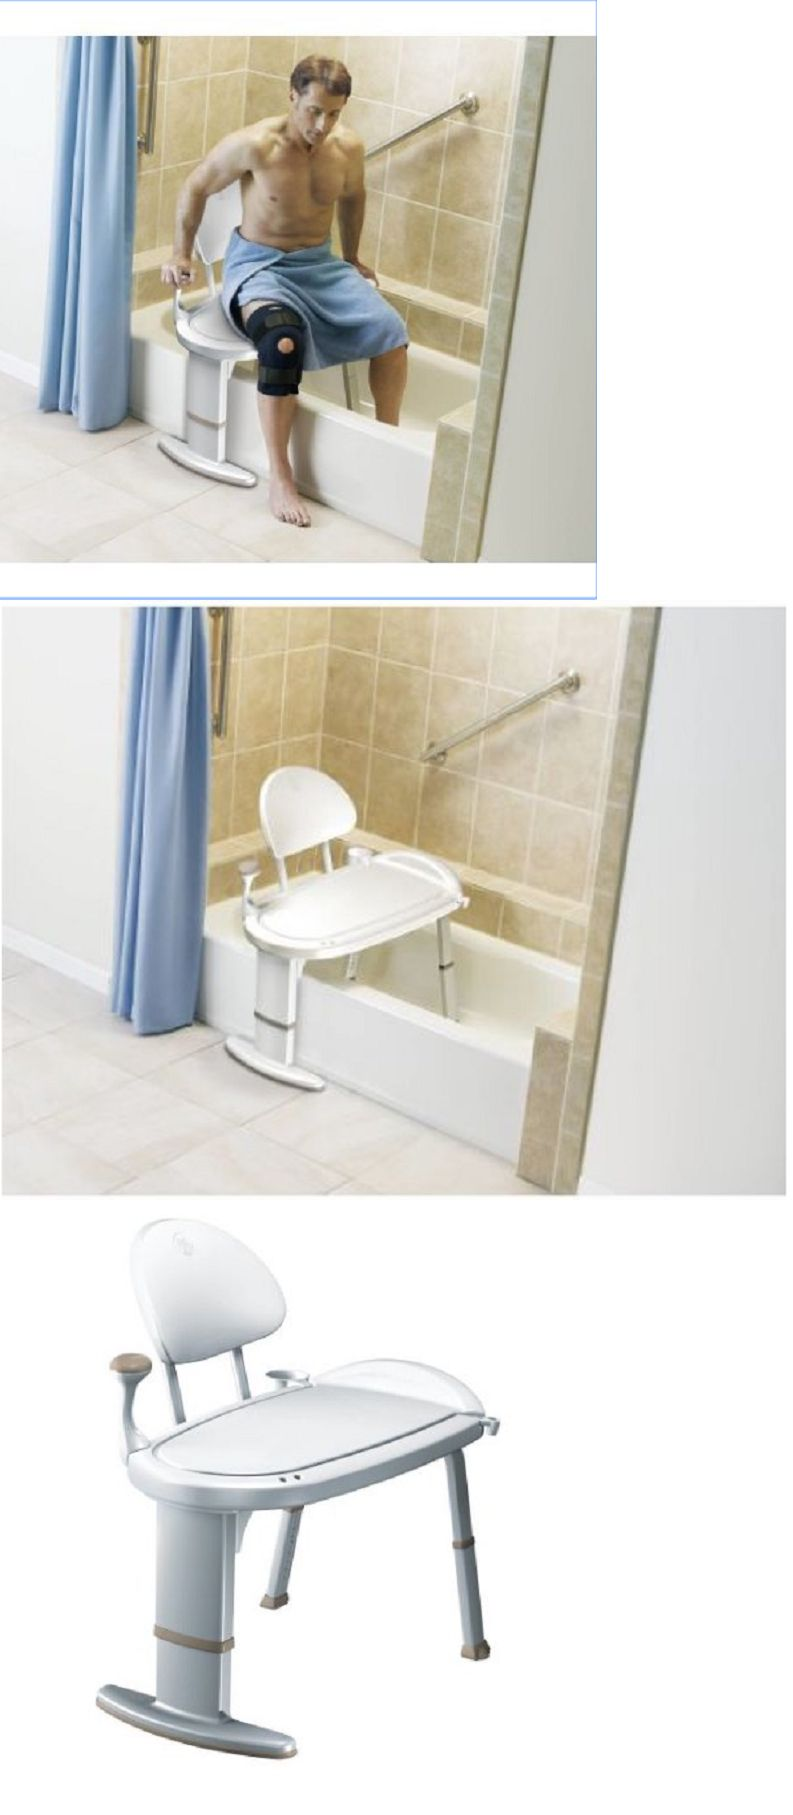 Transfer Boards And Benches: Handicapped Shower Chair Handicap Disabled  Disability Bath Bathtub Bench Adjust